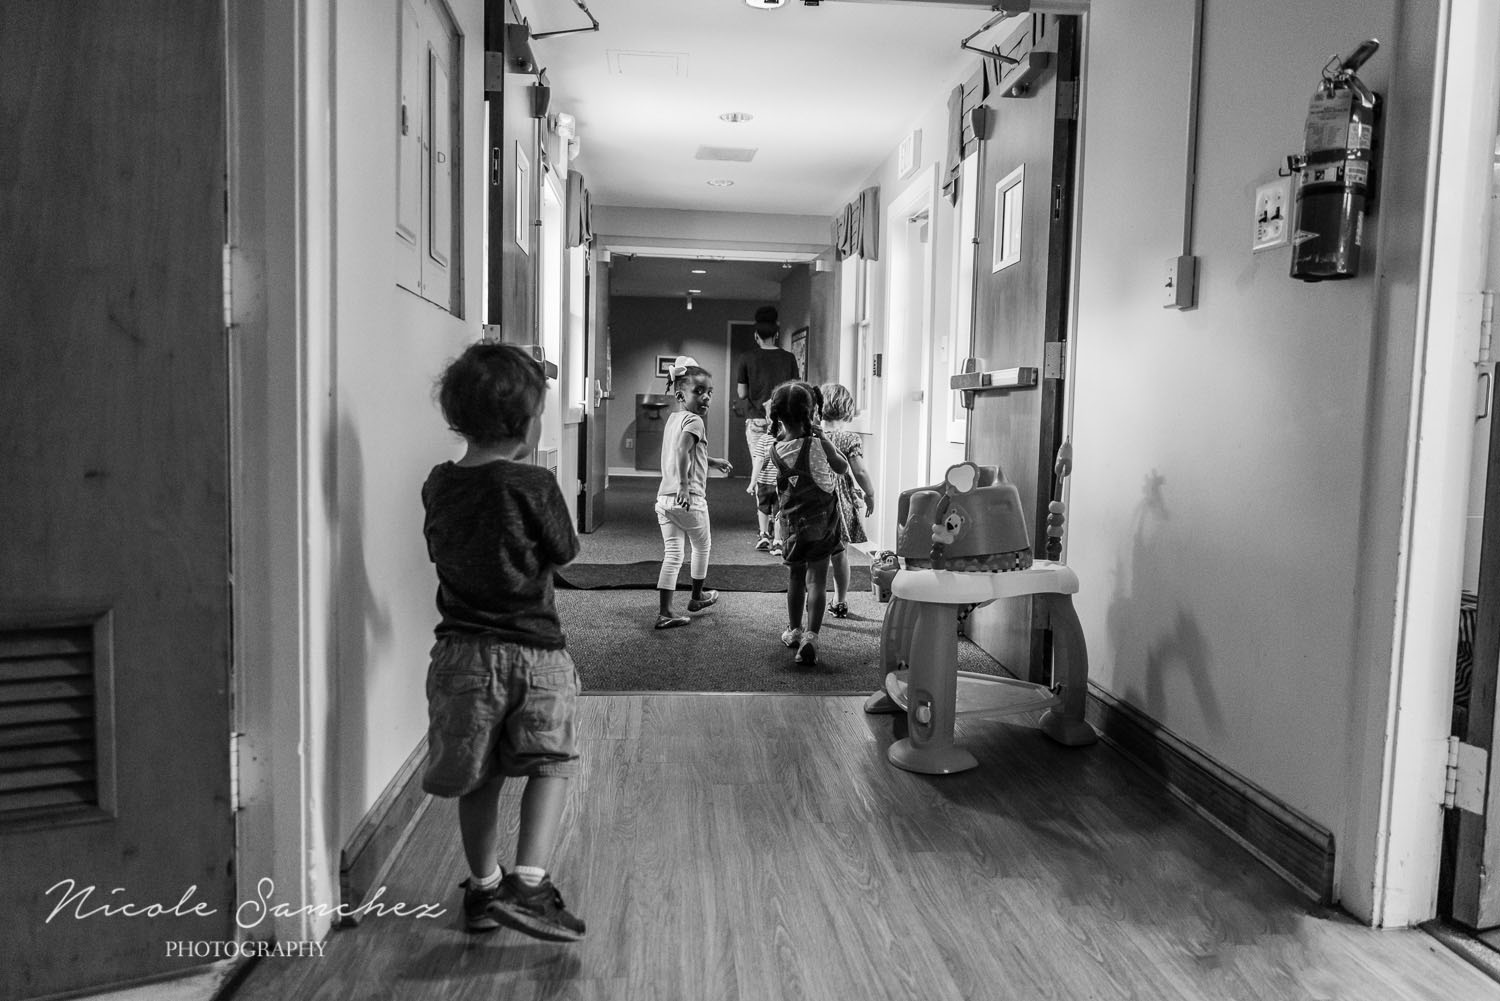 Documenting a day at school | Northern Virginia Family Photographer